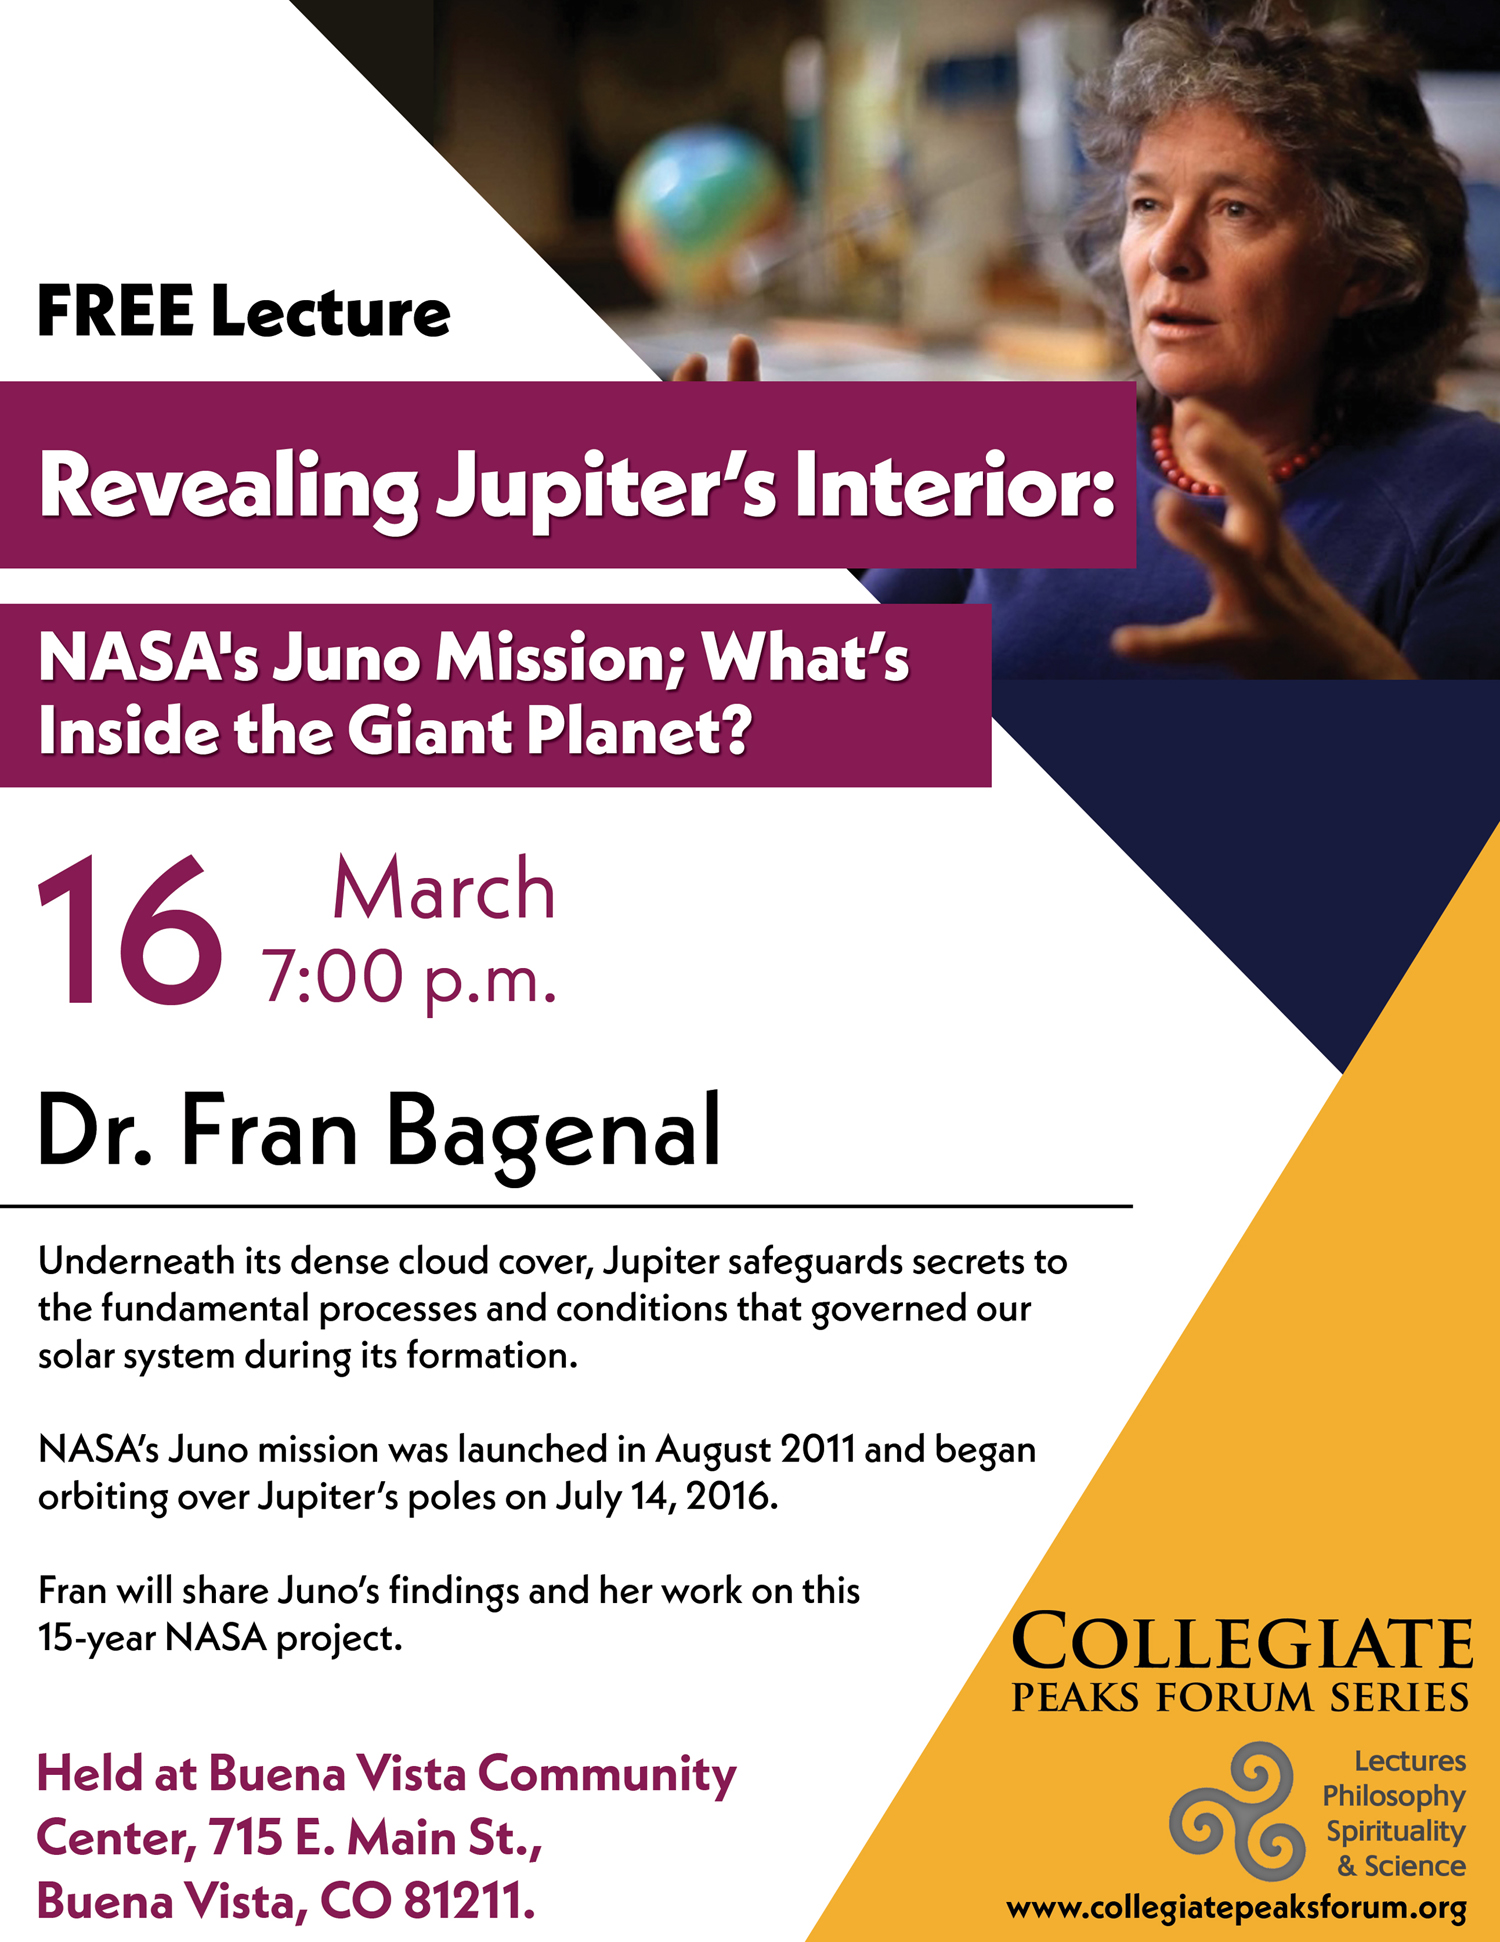 March 16, 2017 Dr. Fran Bagenal